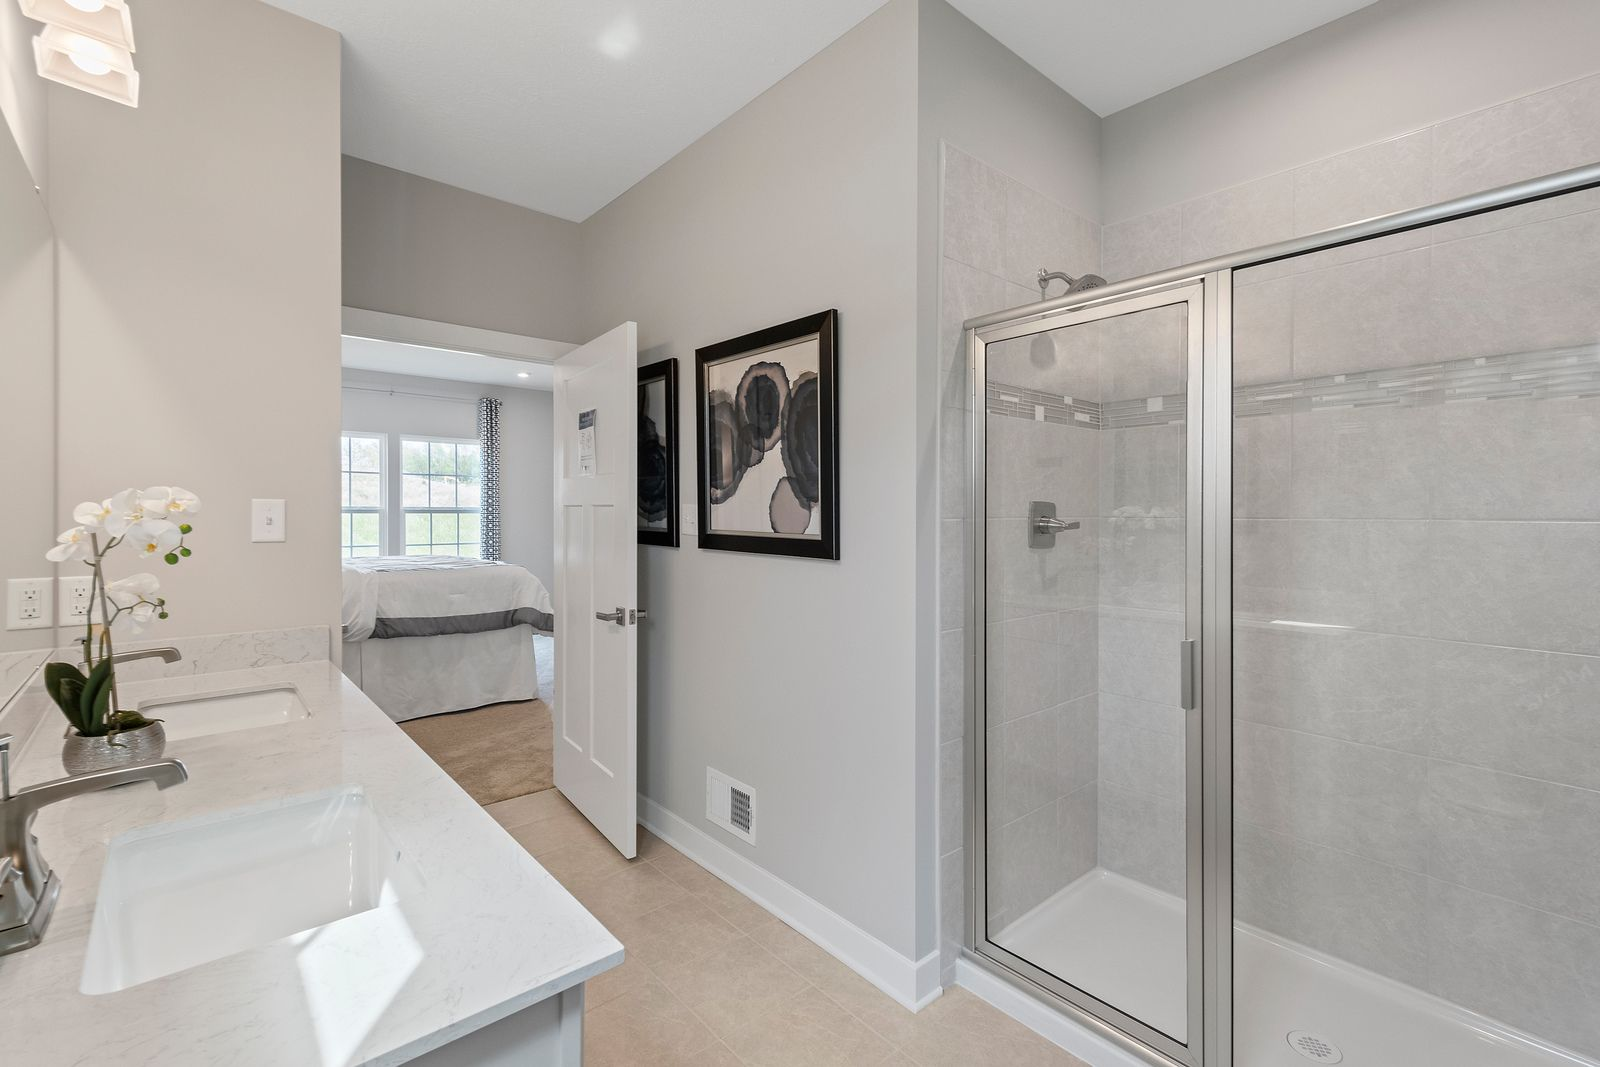 Bathroom featured in the Andover By Ryan Homes in Pittsburgh, PA